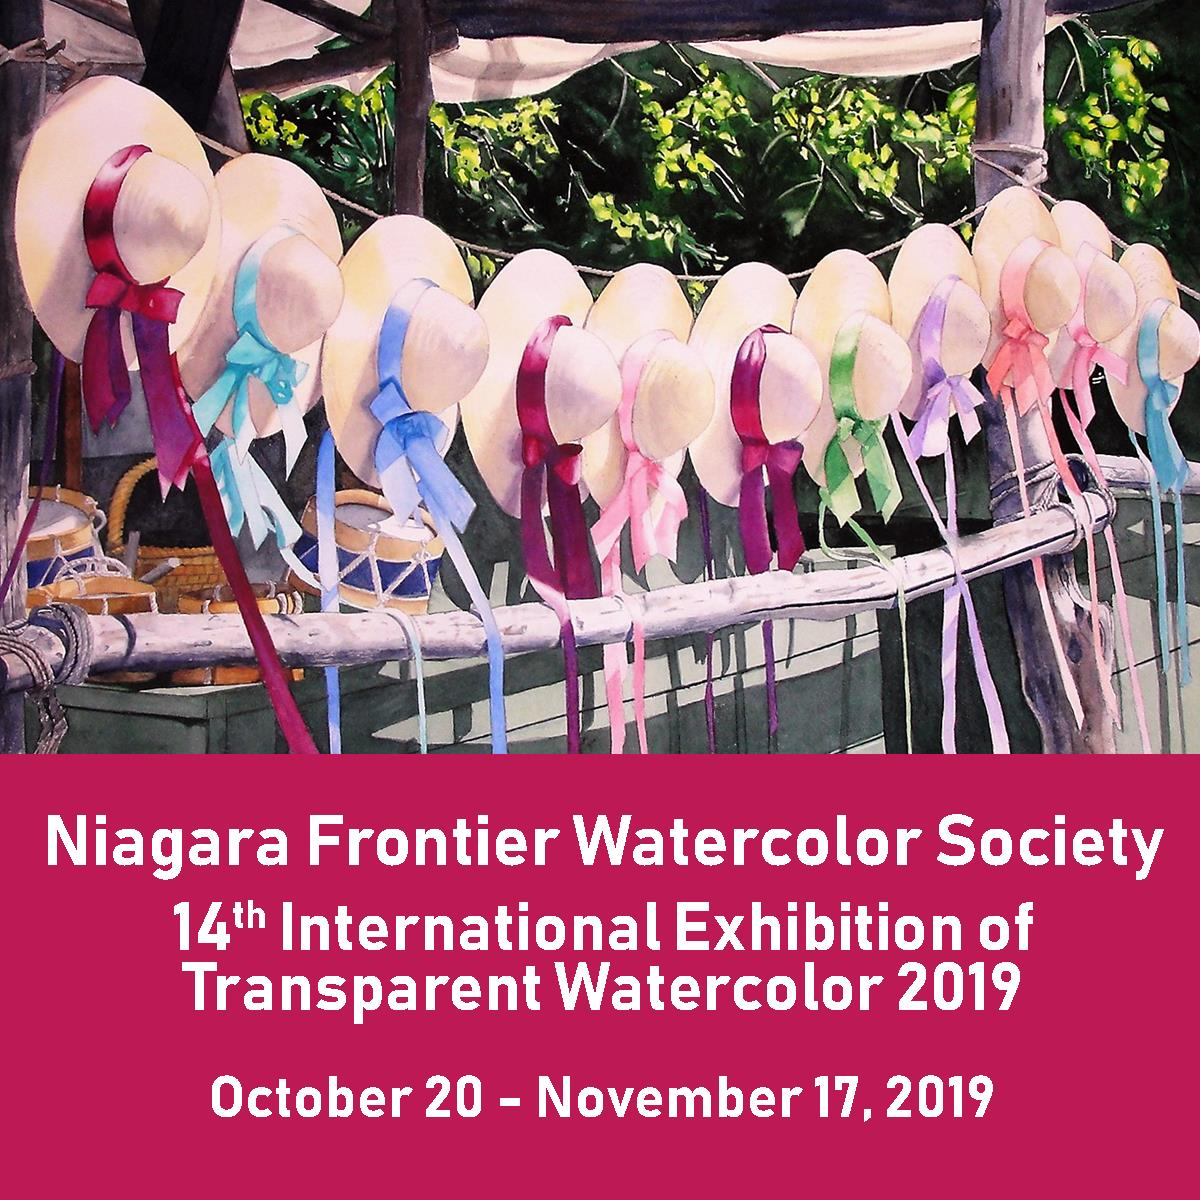 NFWS 14th International Exhibition of Transparent Watercolor